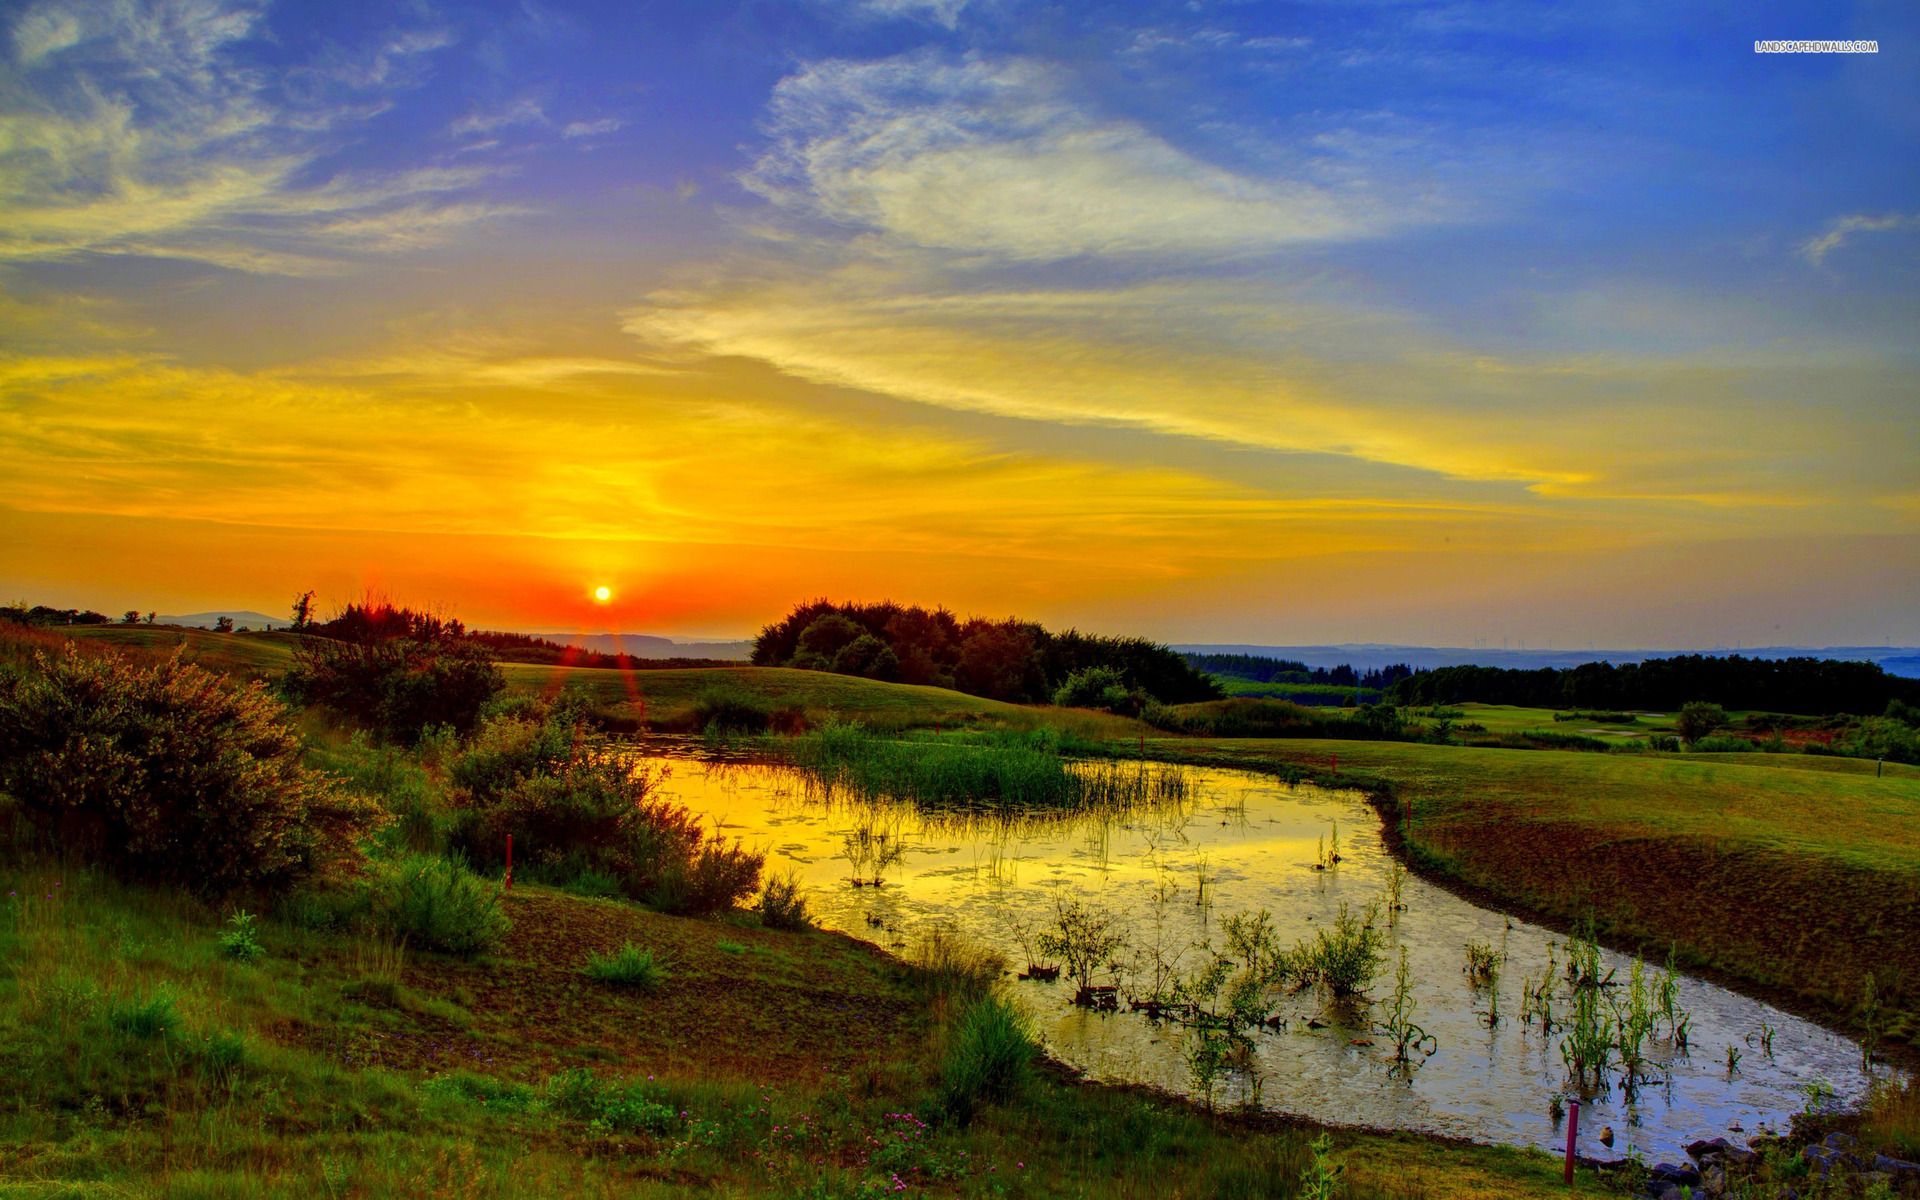 Girls Wallpaper For Facebook Profile Swamp Nature Golden Sunrise Wallpapers Swamp Nature